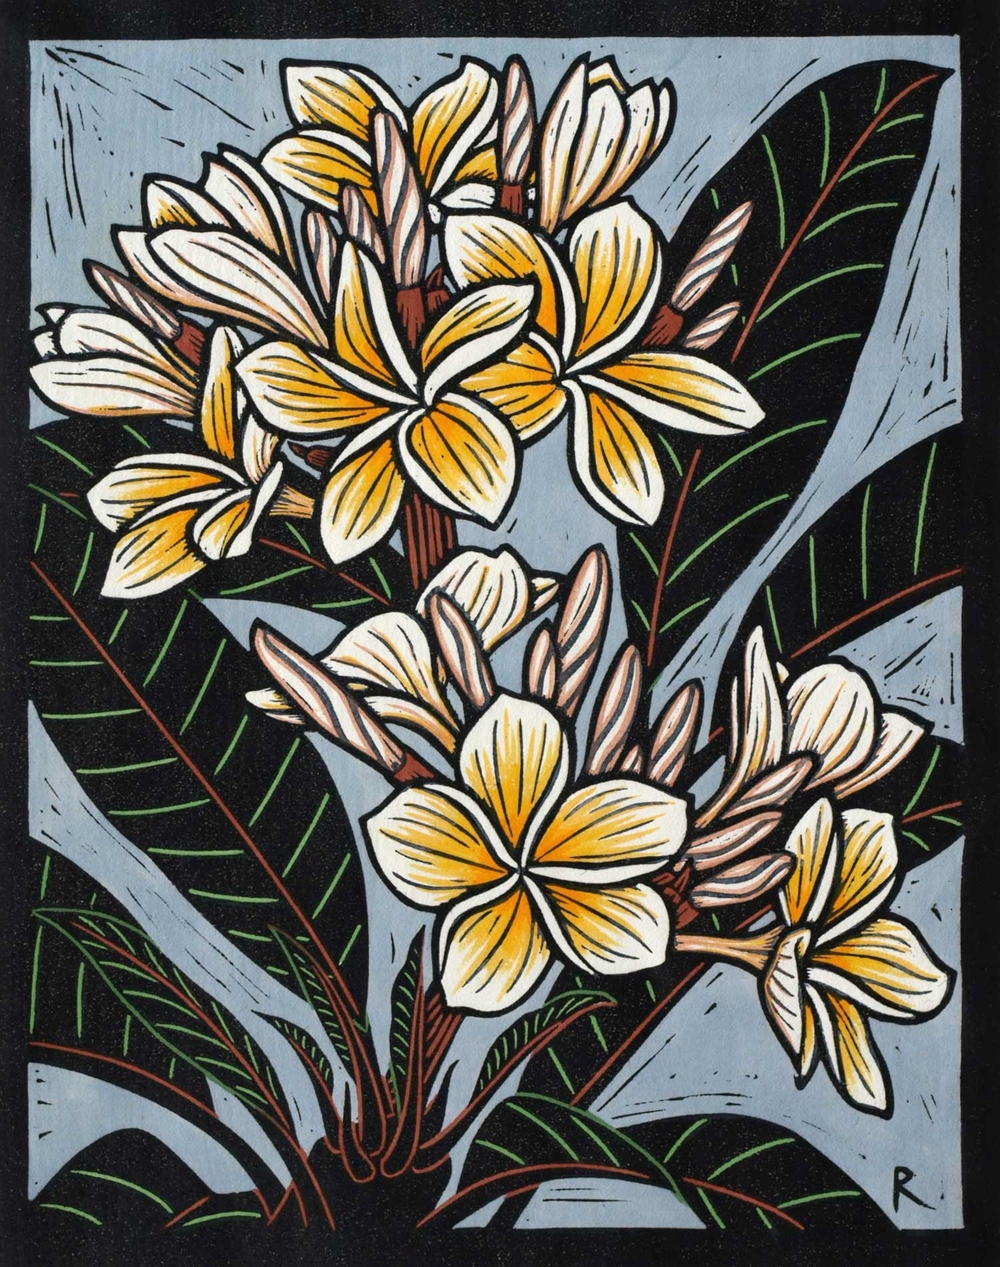 FRANGIPANI II                                             28 X 22 CM    EDITION OF 50                HAND COLOURED LINOCUT ON HANDMADE JAPANESE PAPER             $650